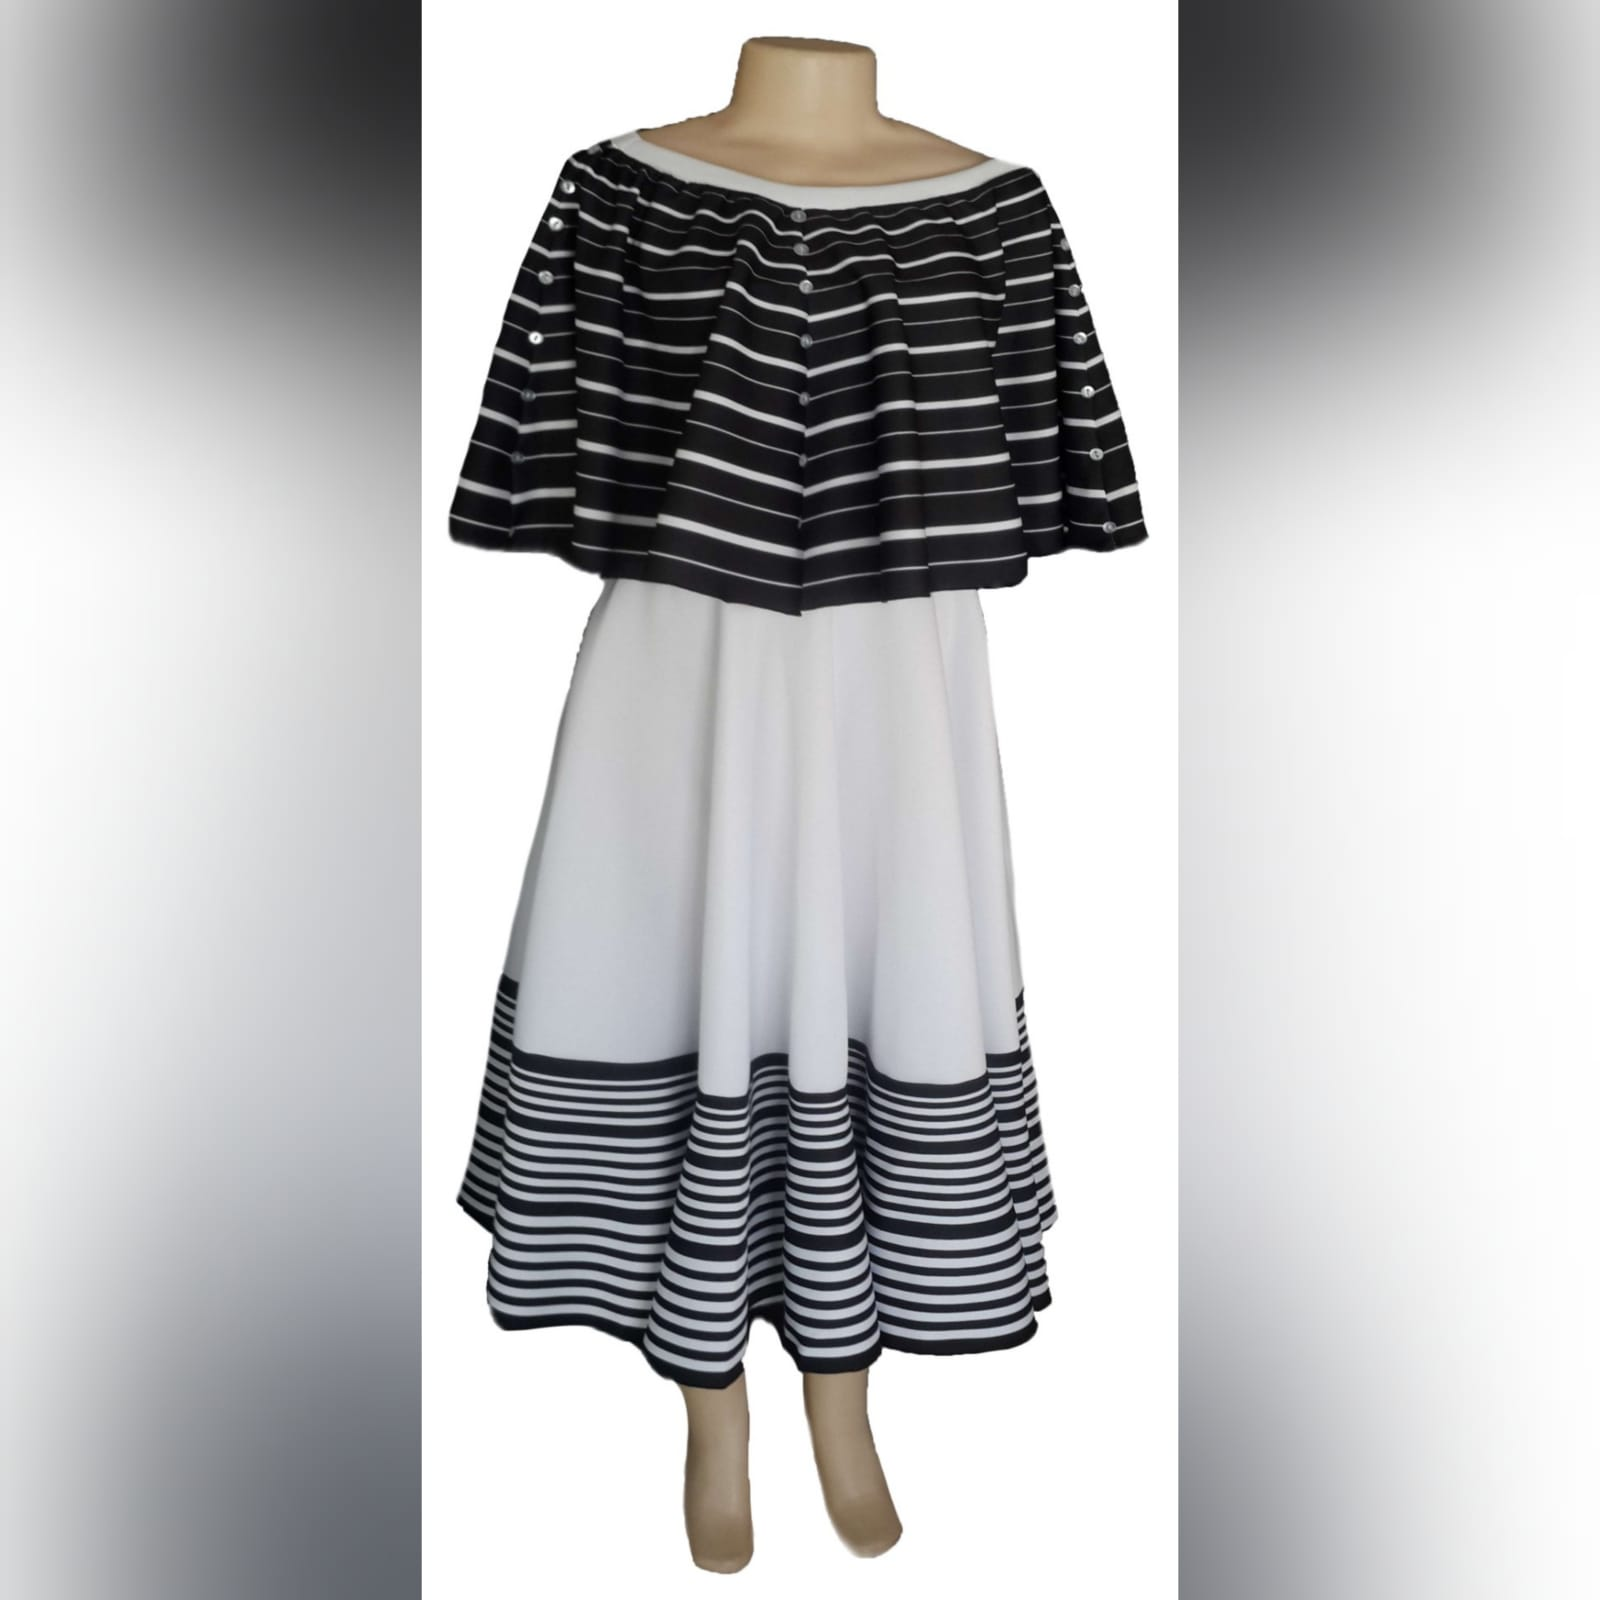 Black and white 2 piece modern traditional dress 4 xhosa black & white 2 piece modern traditional dress. Boob tube dress with a removable poncho